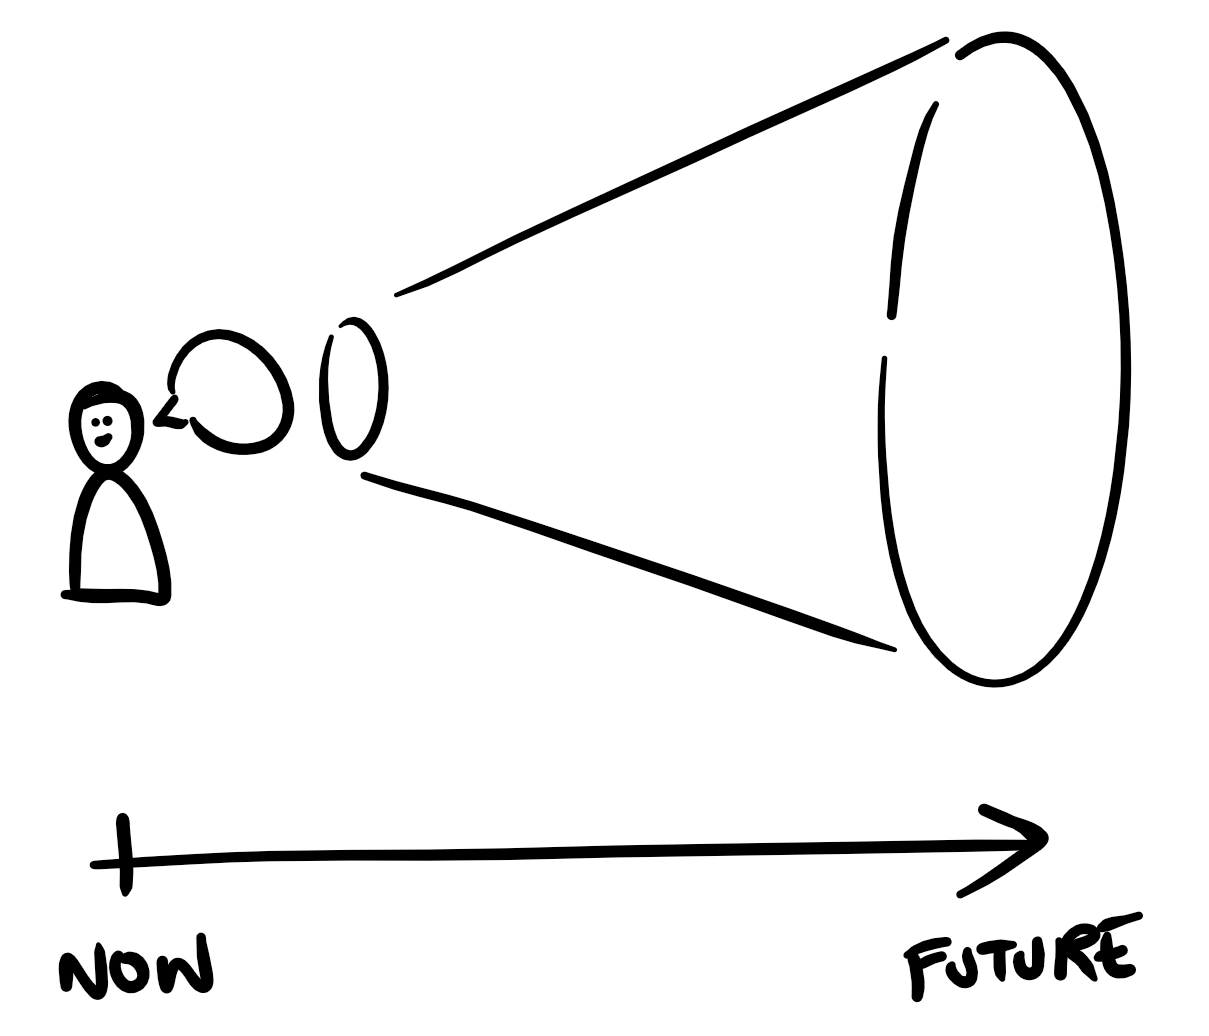 A cartoon showing a person speaking with a cone protruding into the future.